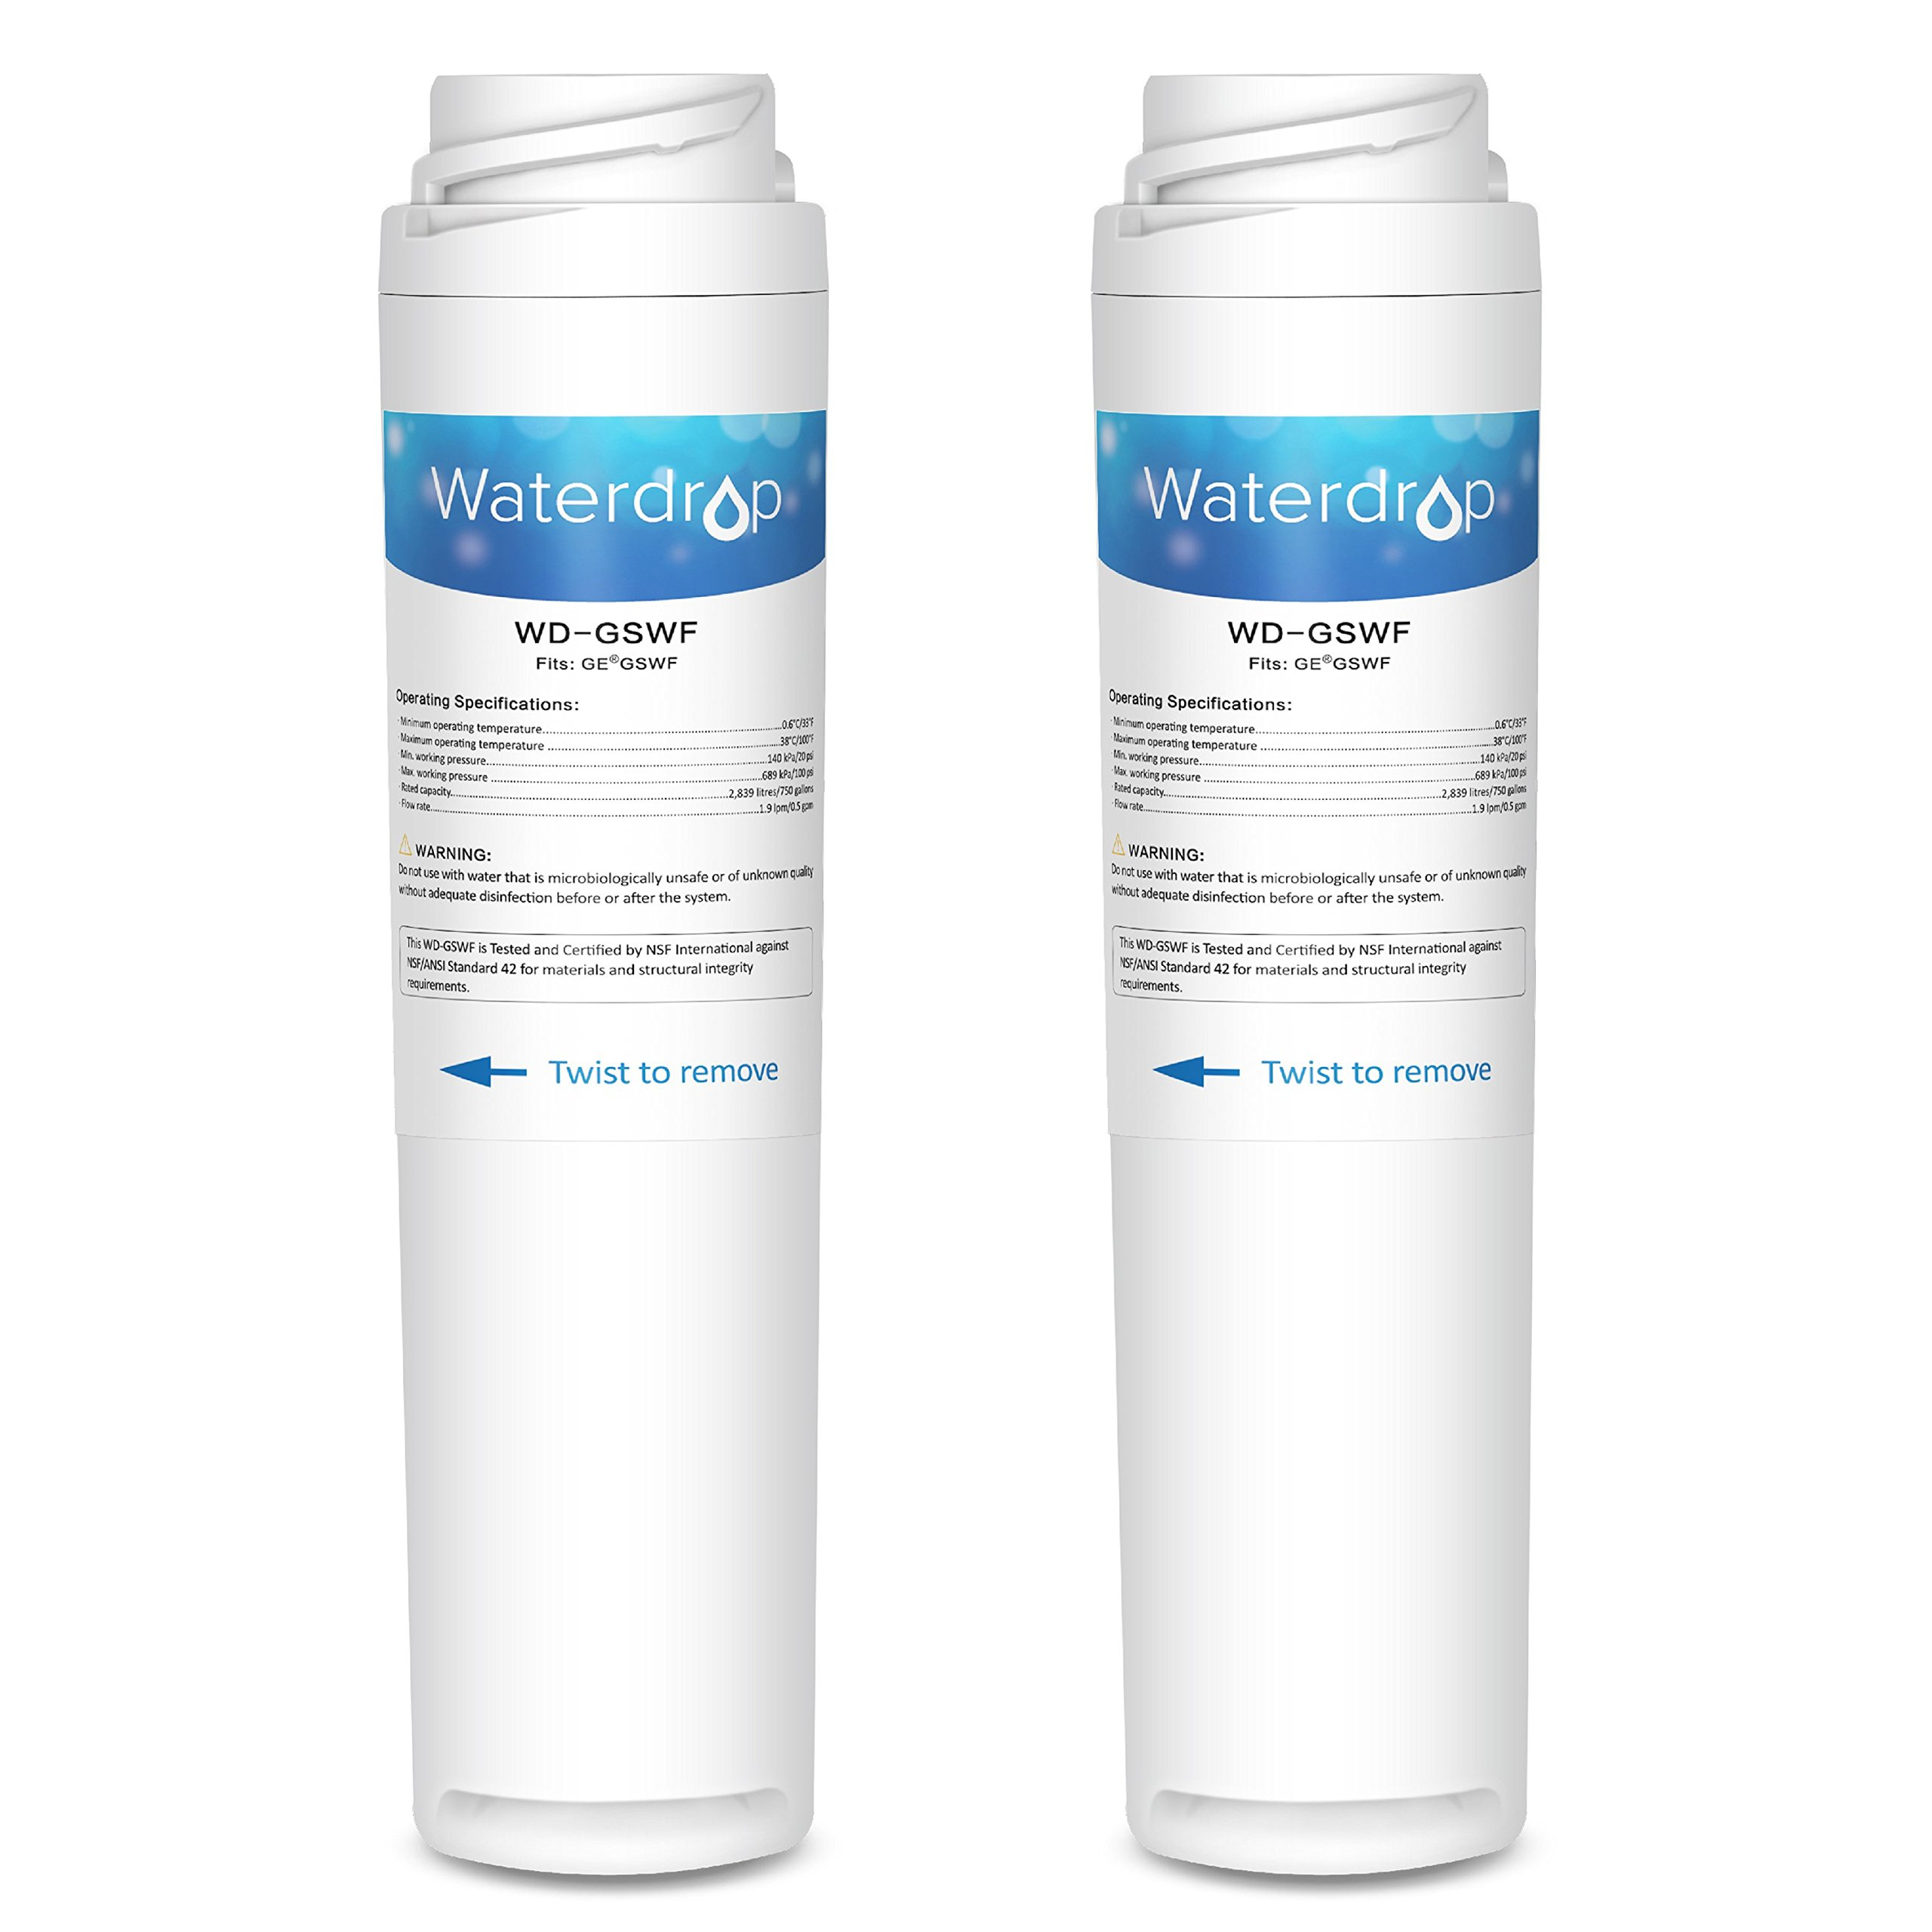 Waterdrop GSWF Replacement Refrigerator Water Filter, Compatible with GE GSWF, Kenmore 46-9914, 469914, 9914, Standard Series, 2 Pack